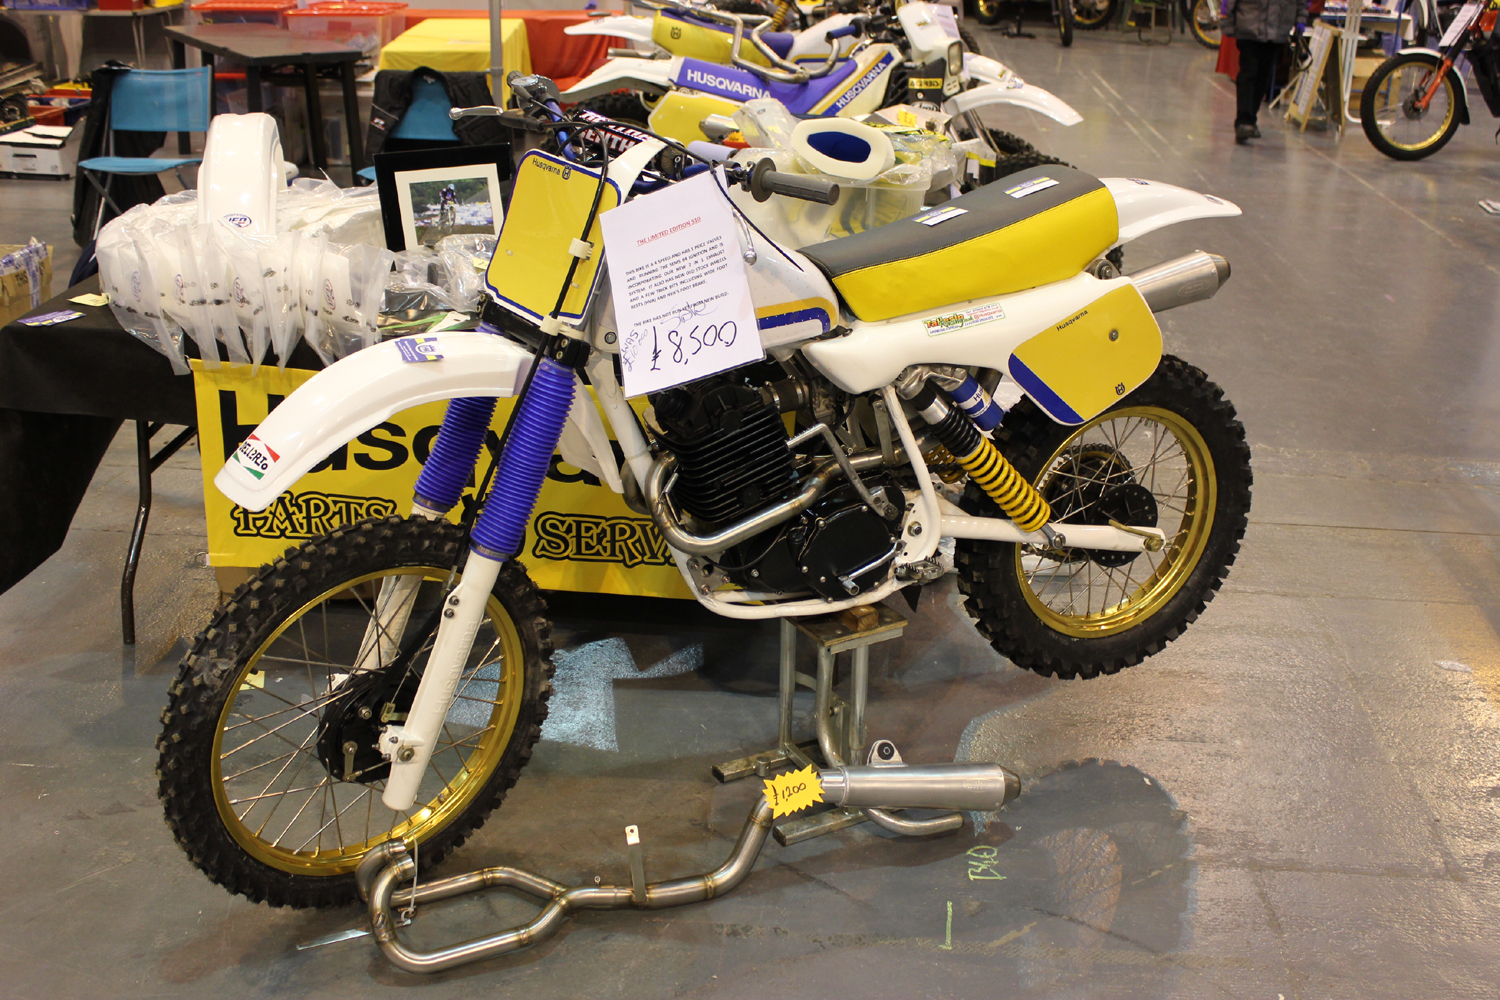 classicdirtbikerider.com-photo by Mr J-2015 Telford classic dirt bike show-HUSQVARNA 510 FOURSTROKE TWINSHOCK MOTOCROSS BIKE FOR SALE £8500